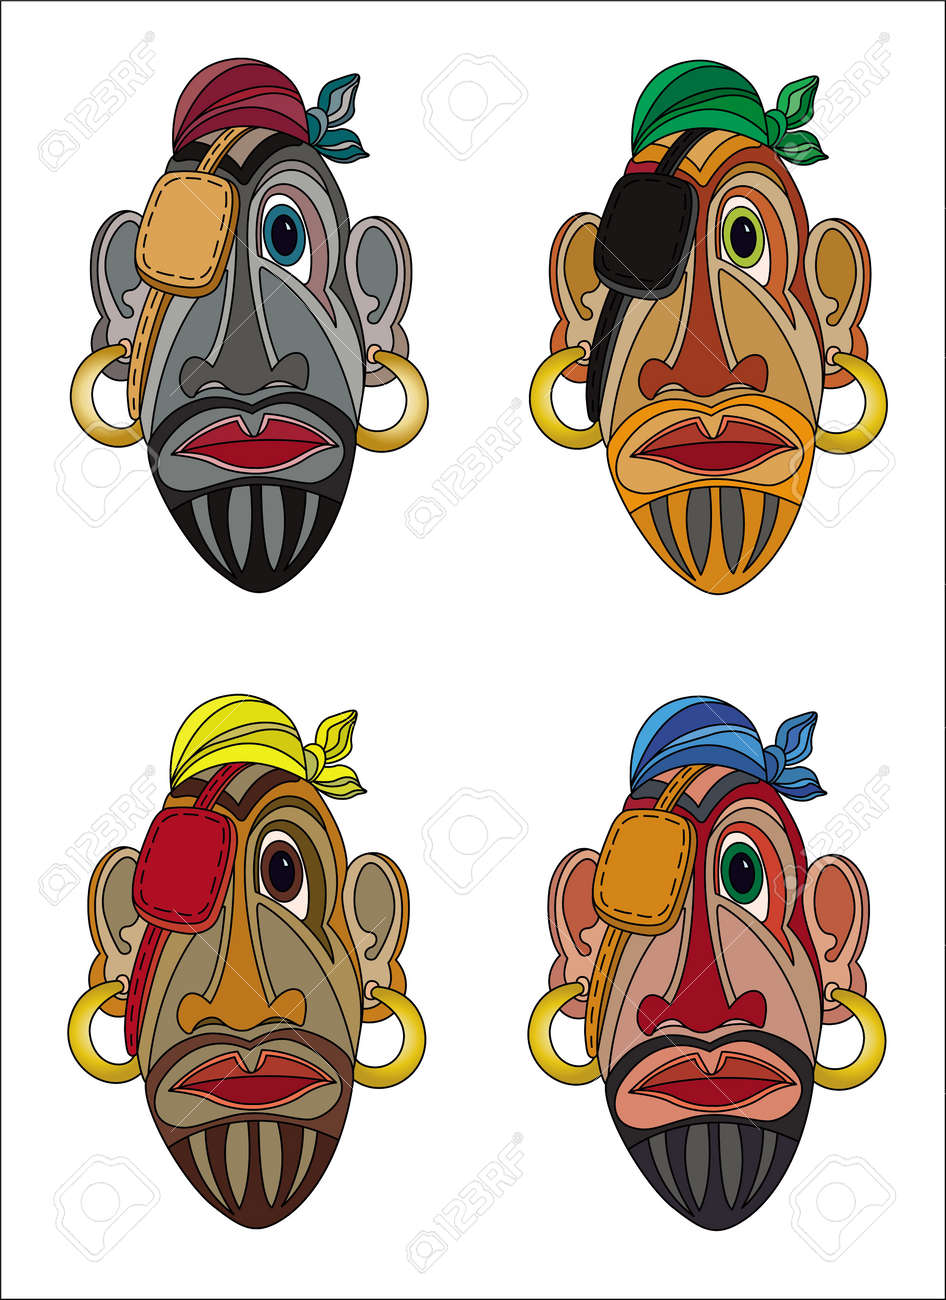 Uncategorized Pirate Faces pirate faces cartoon color mask isolated on white royalty free stock vector 57860152